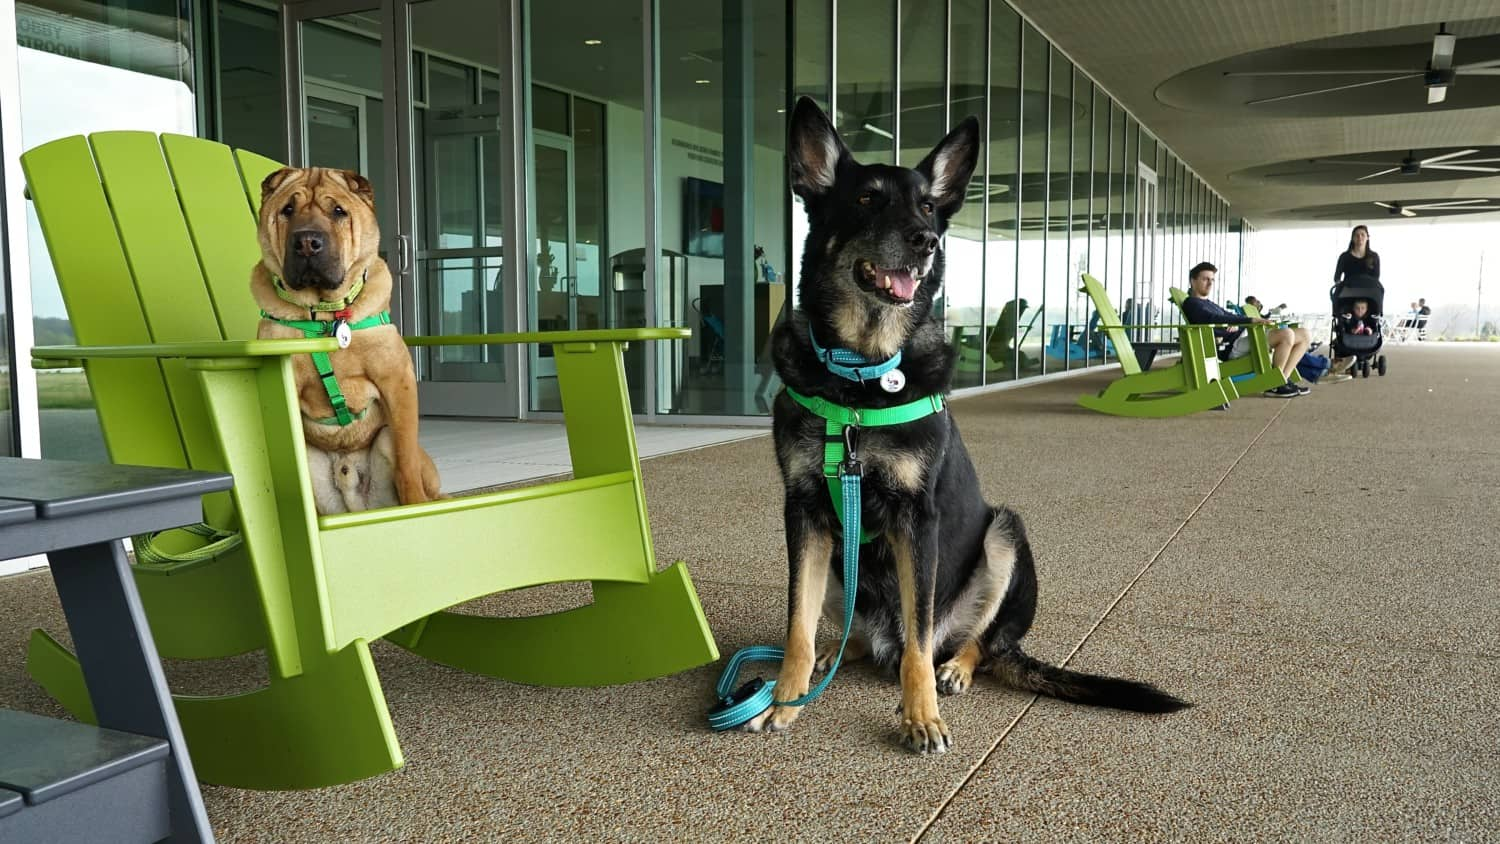 Tennessee's Top Pet Friendly Attraction: Shelby Farms Park